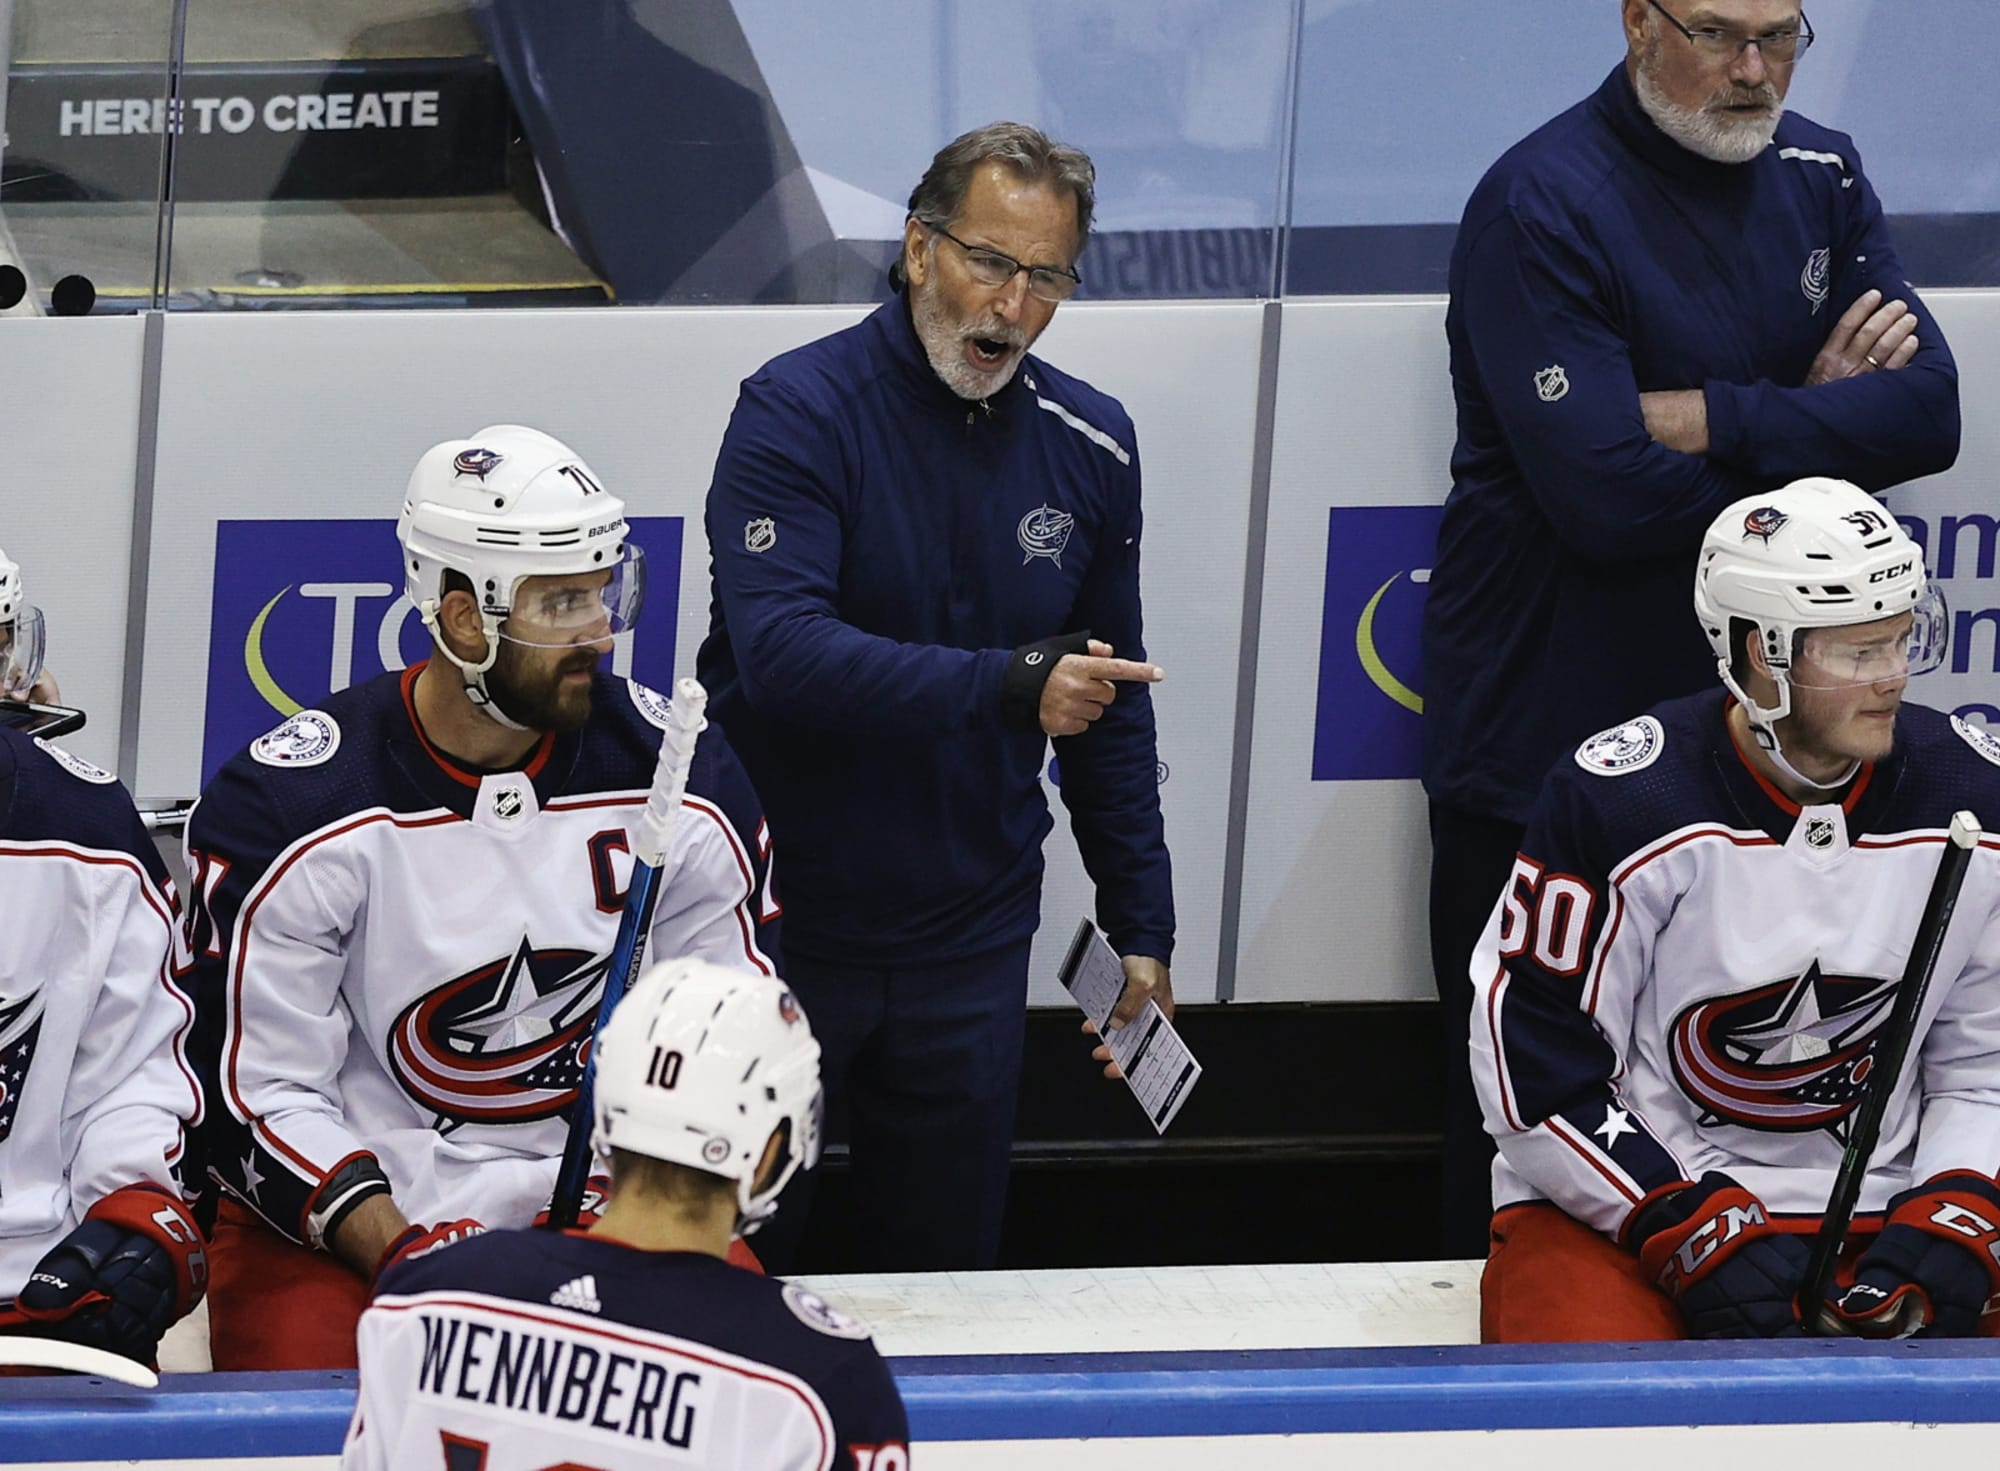 Columbus Blue Jackets: It's time to move on from John Tortorella